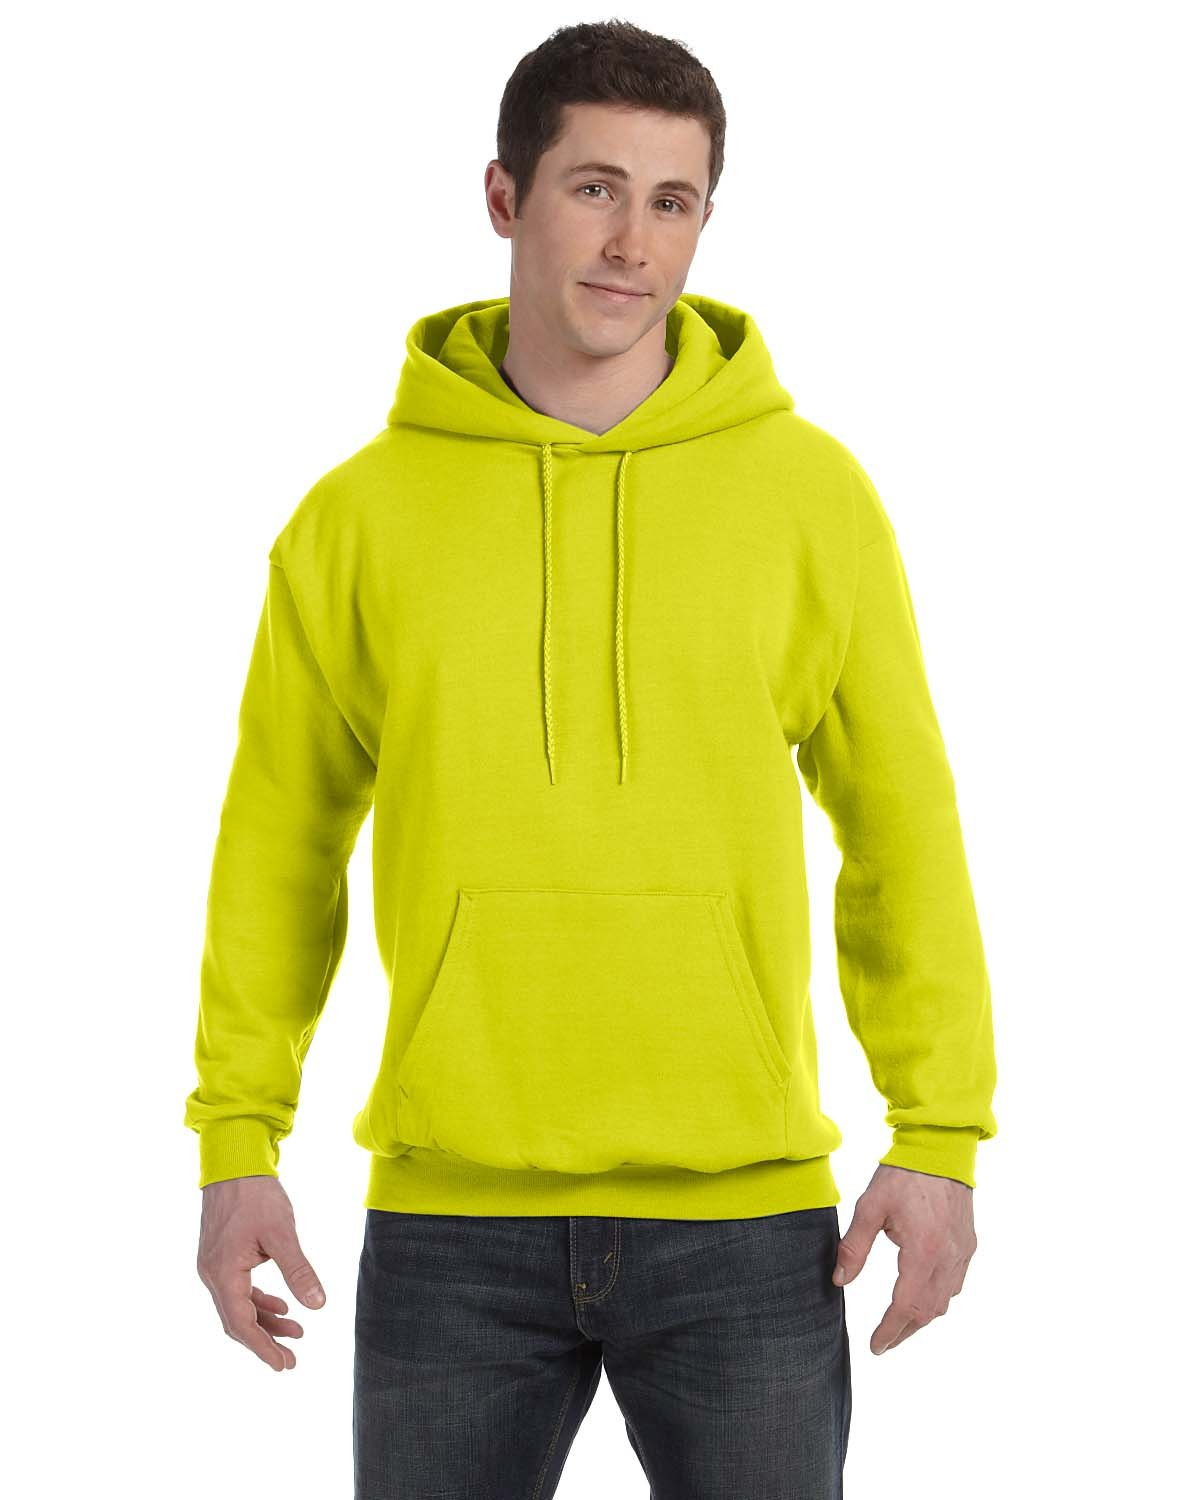 Hanes Unisex Ecosmart® 50/50 Pullover Hooded Sweatshirt SAFETY GREEN